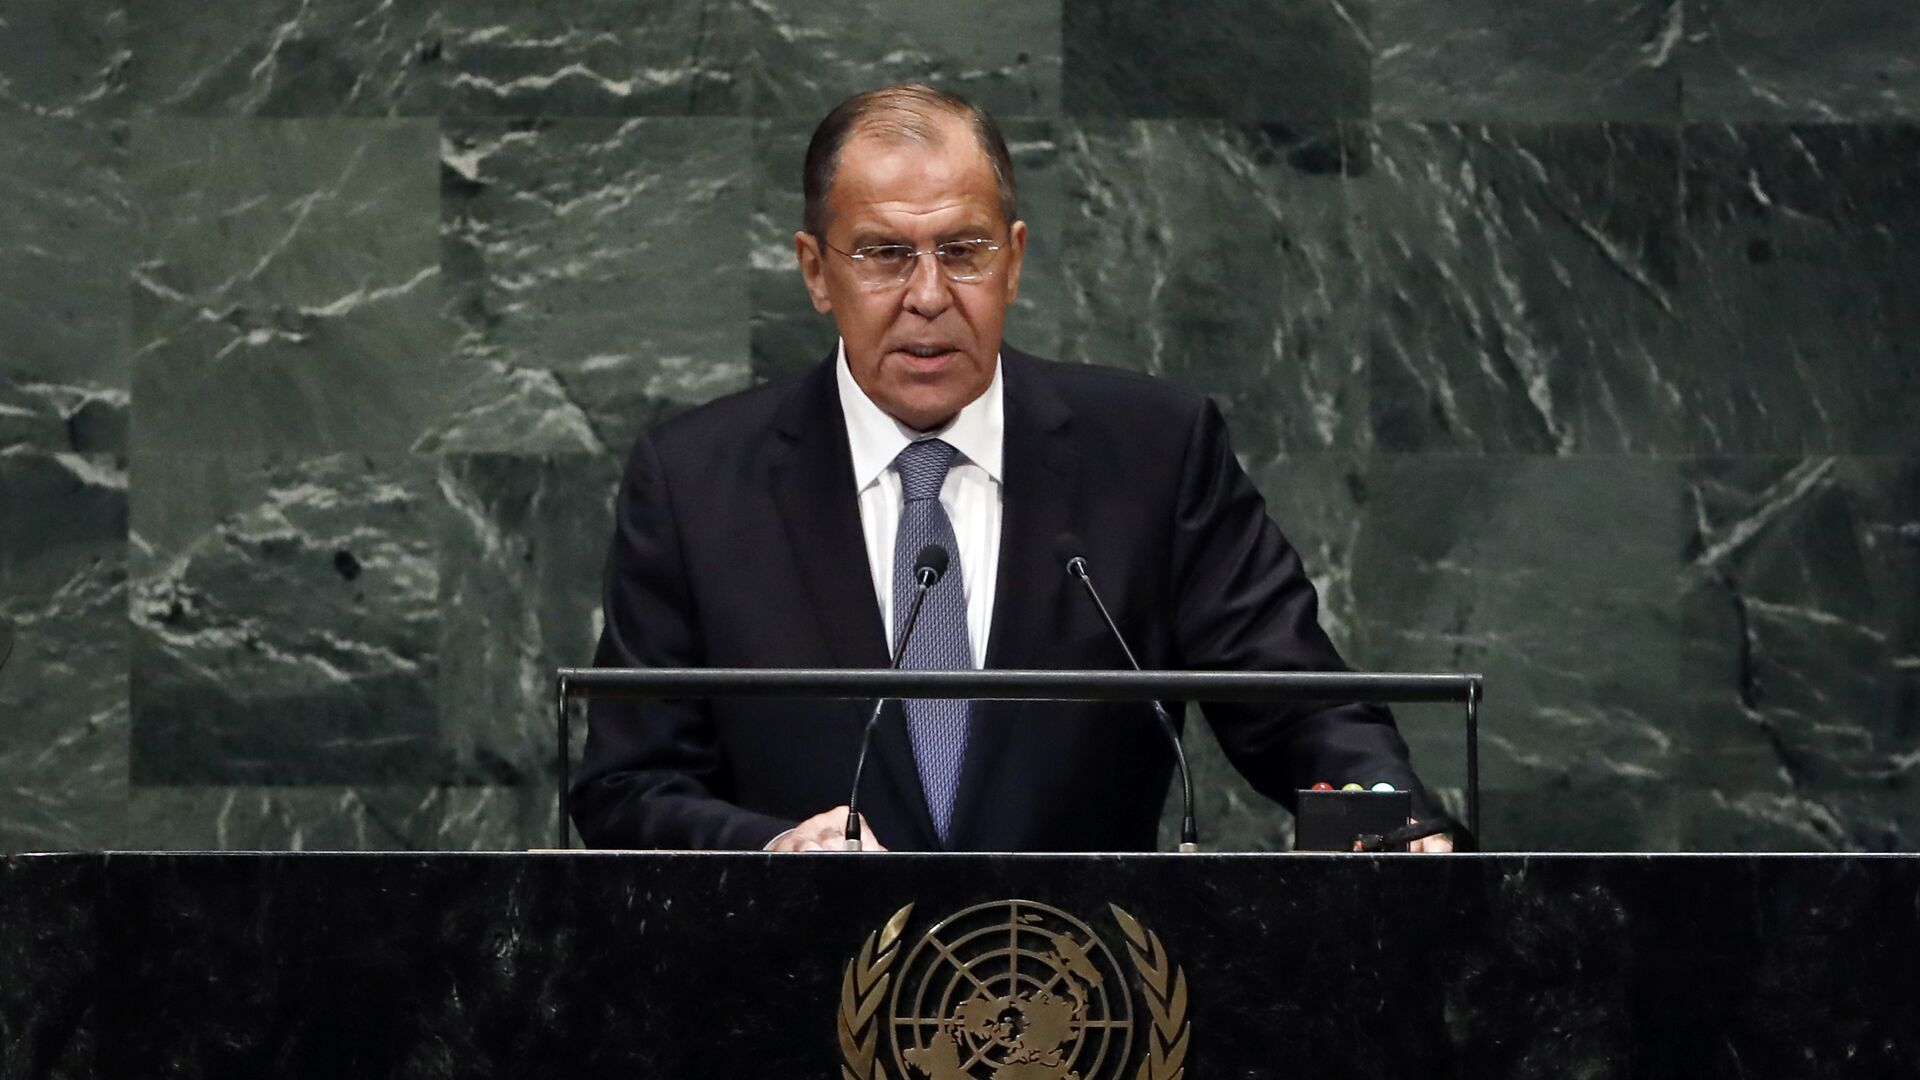 Russia's Foreign Minister Sergey Lavrov addresses the 73rd session of the United Nations General Assembly, at U.N. headquarters, Friday, Sept. 28, 2018 - Sputnik International, 1920, 25.09.2021